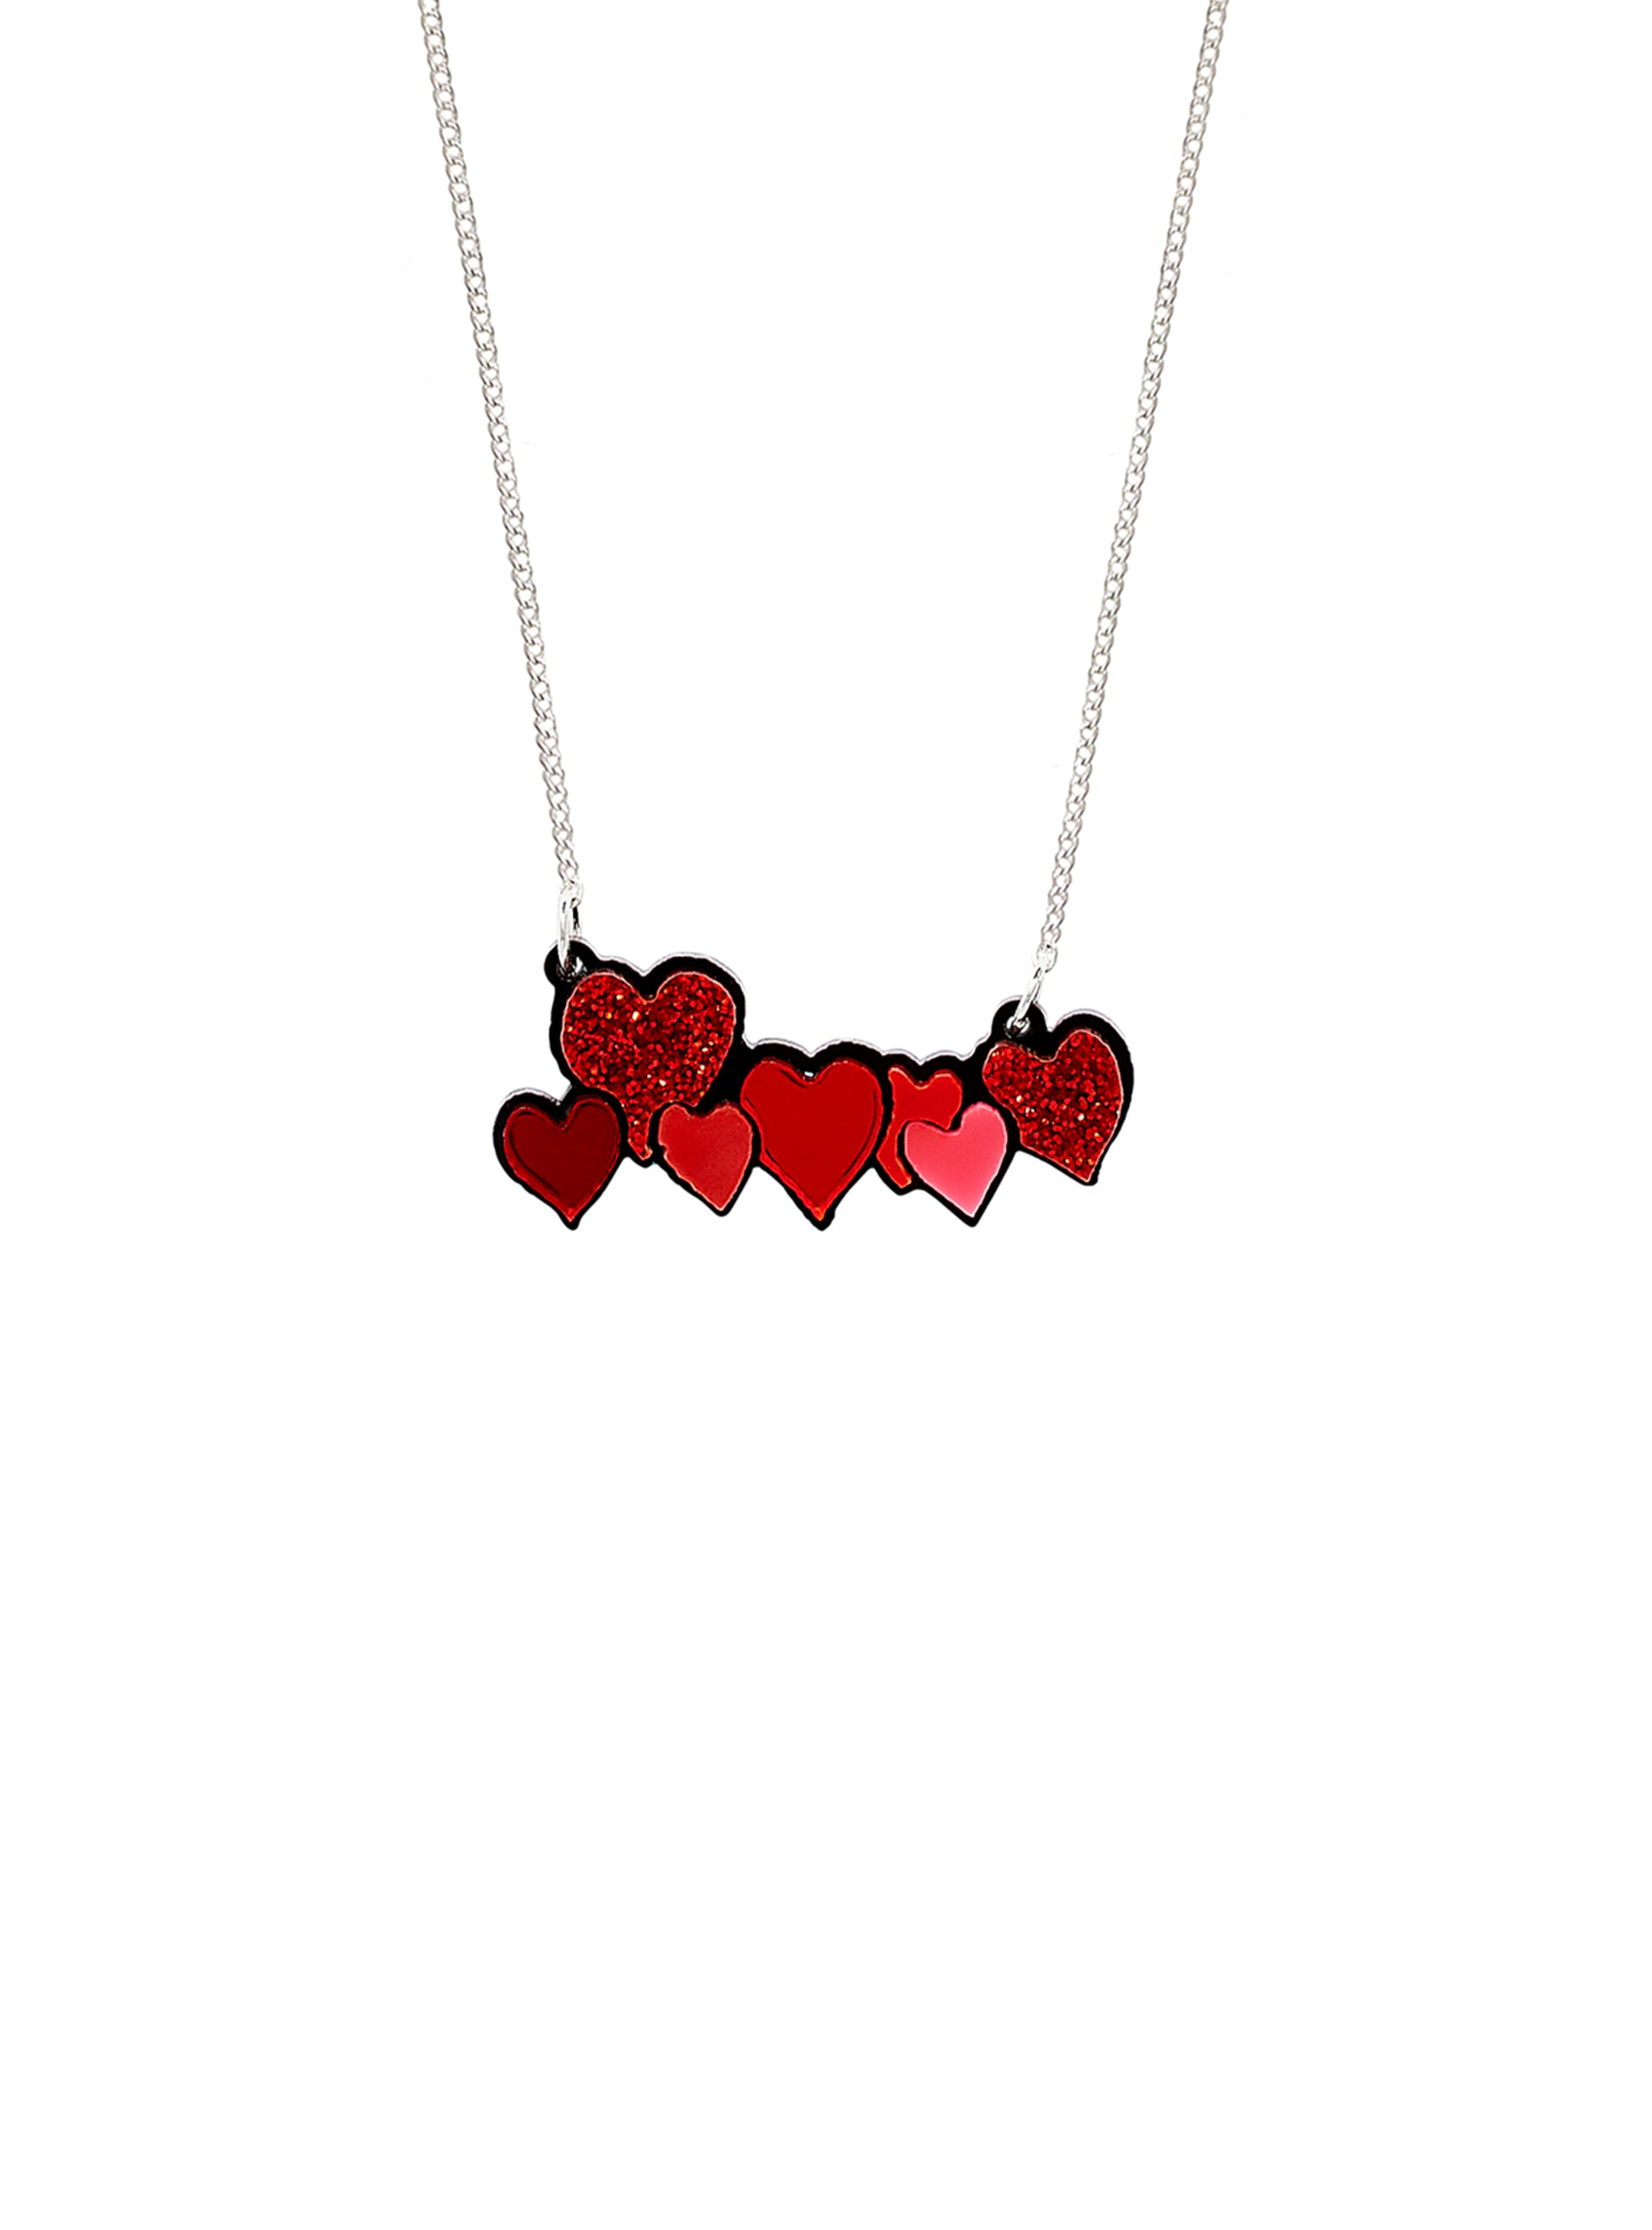 Peanuts-Love-Heart-Necklace